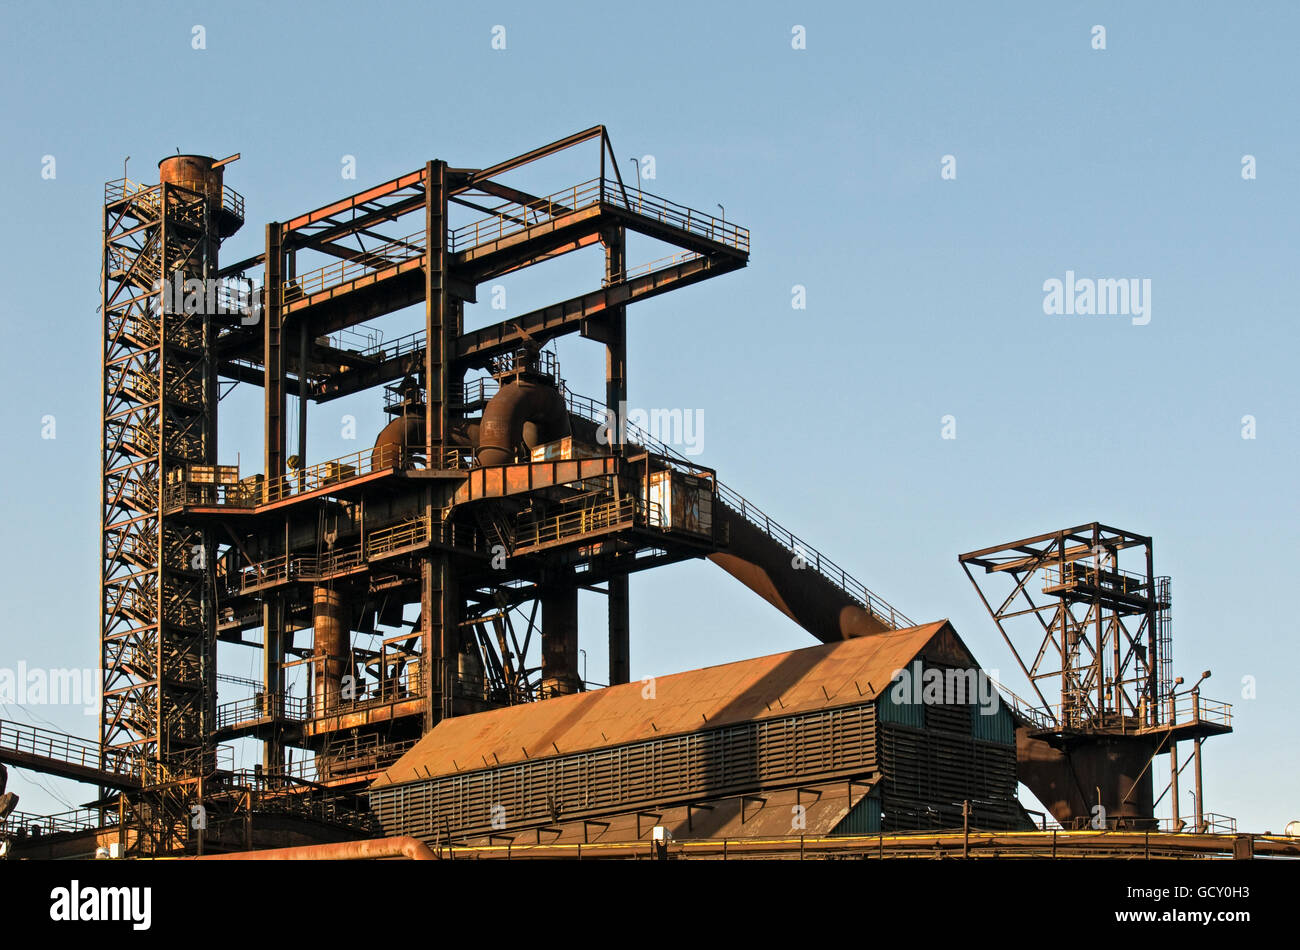 Iron Furnaces Stock Photos & Iron Furnaces Stock Images - Alamy